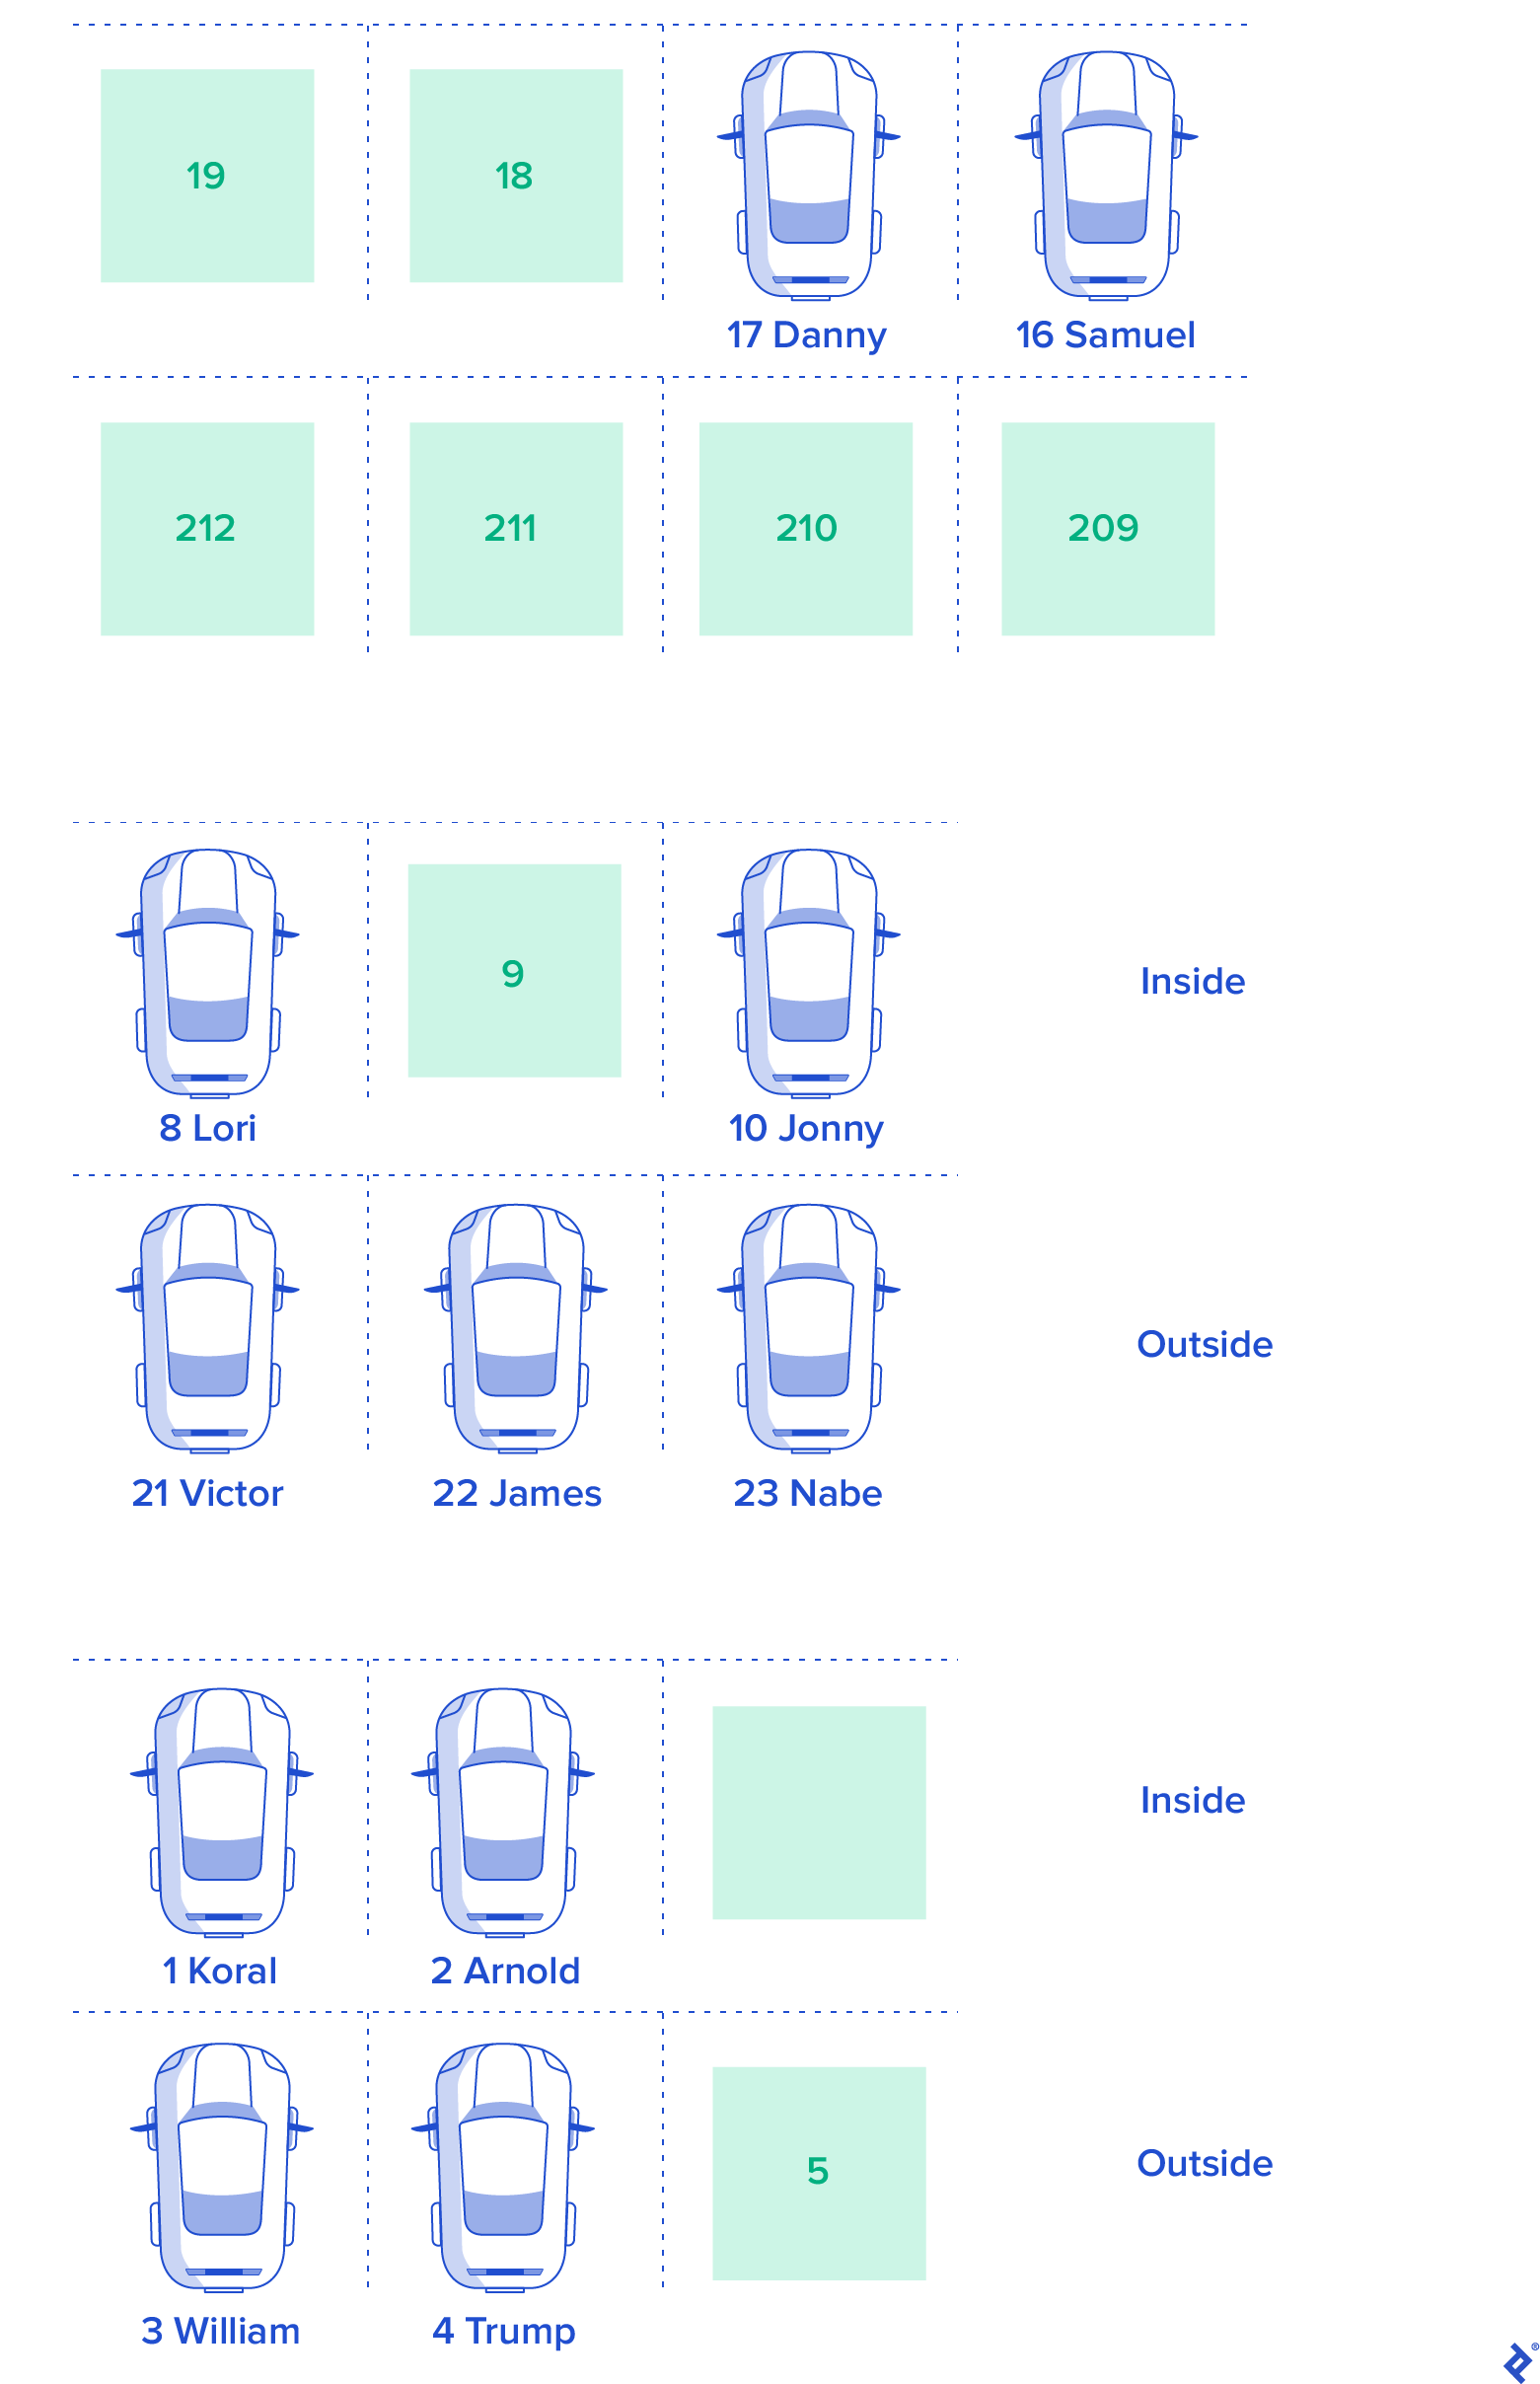 The original web app concept, showing rows of inside and outside double-parking spaces with numbers and sometimes names. Those with a name are blue, and those without a name are green.